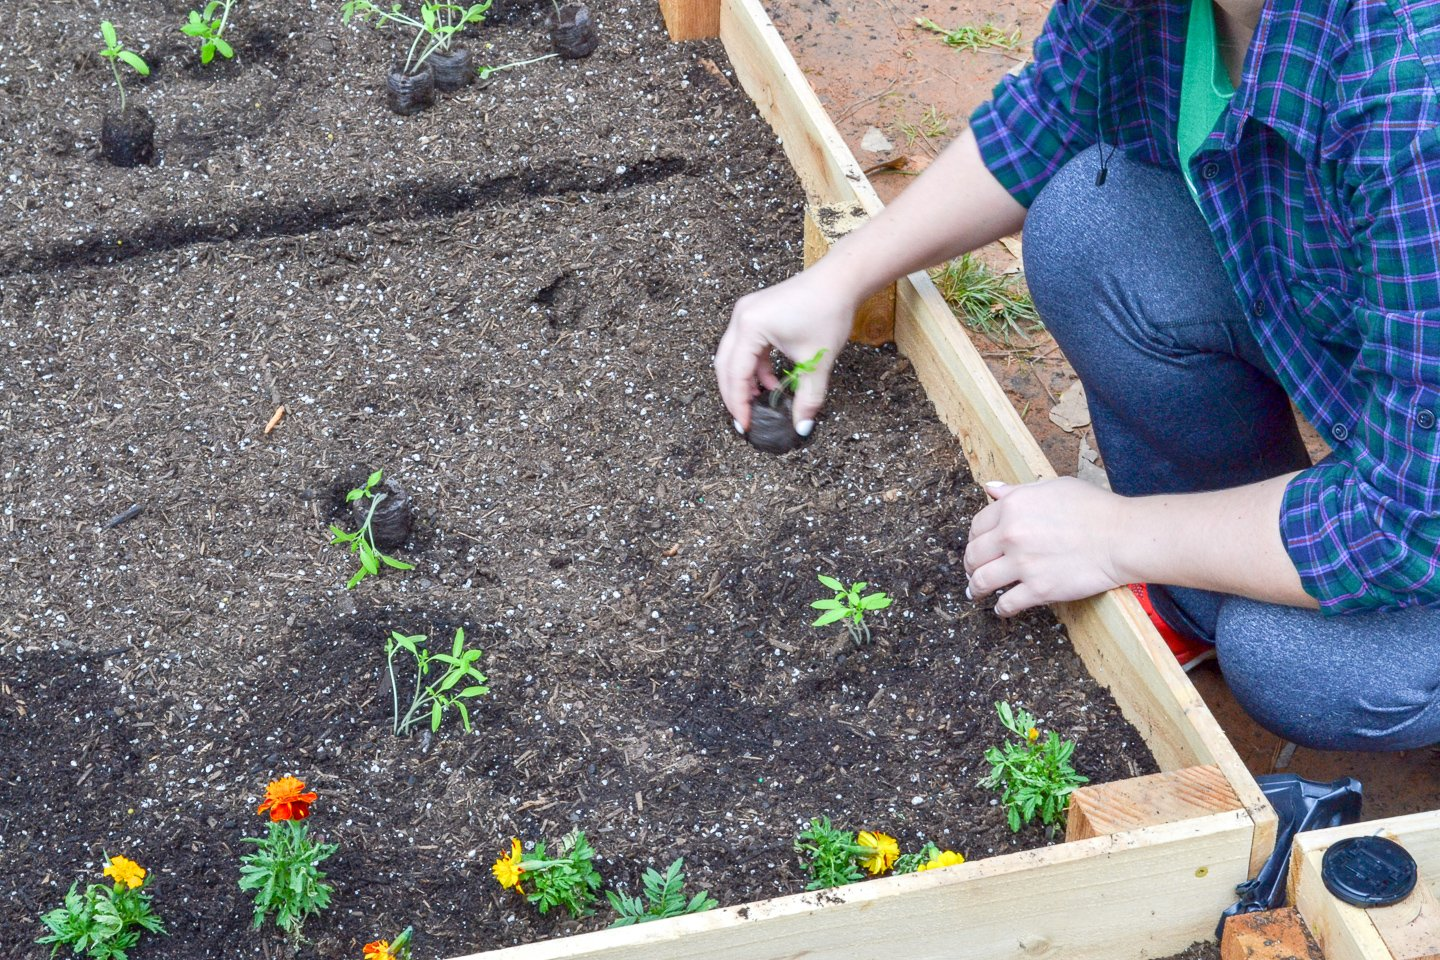 digging in small rows to plant tomatoes in the raised garden bed